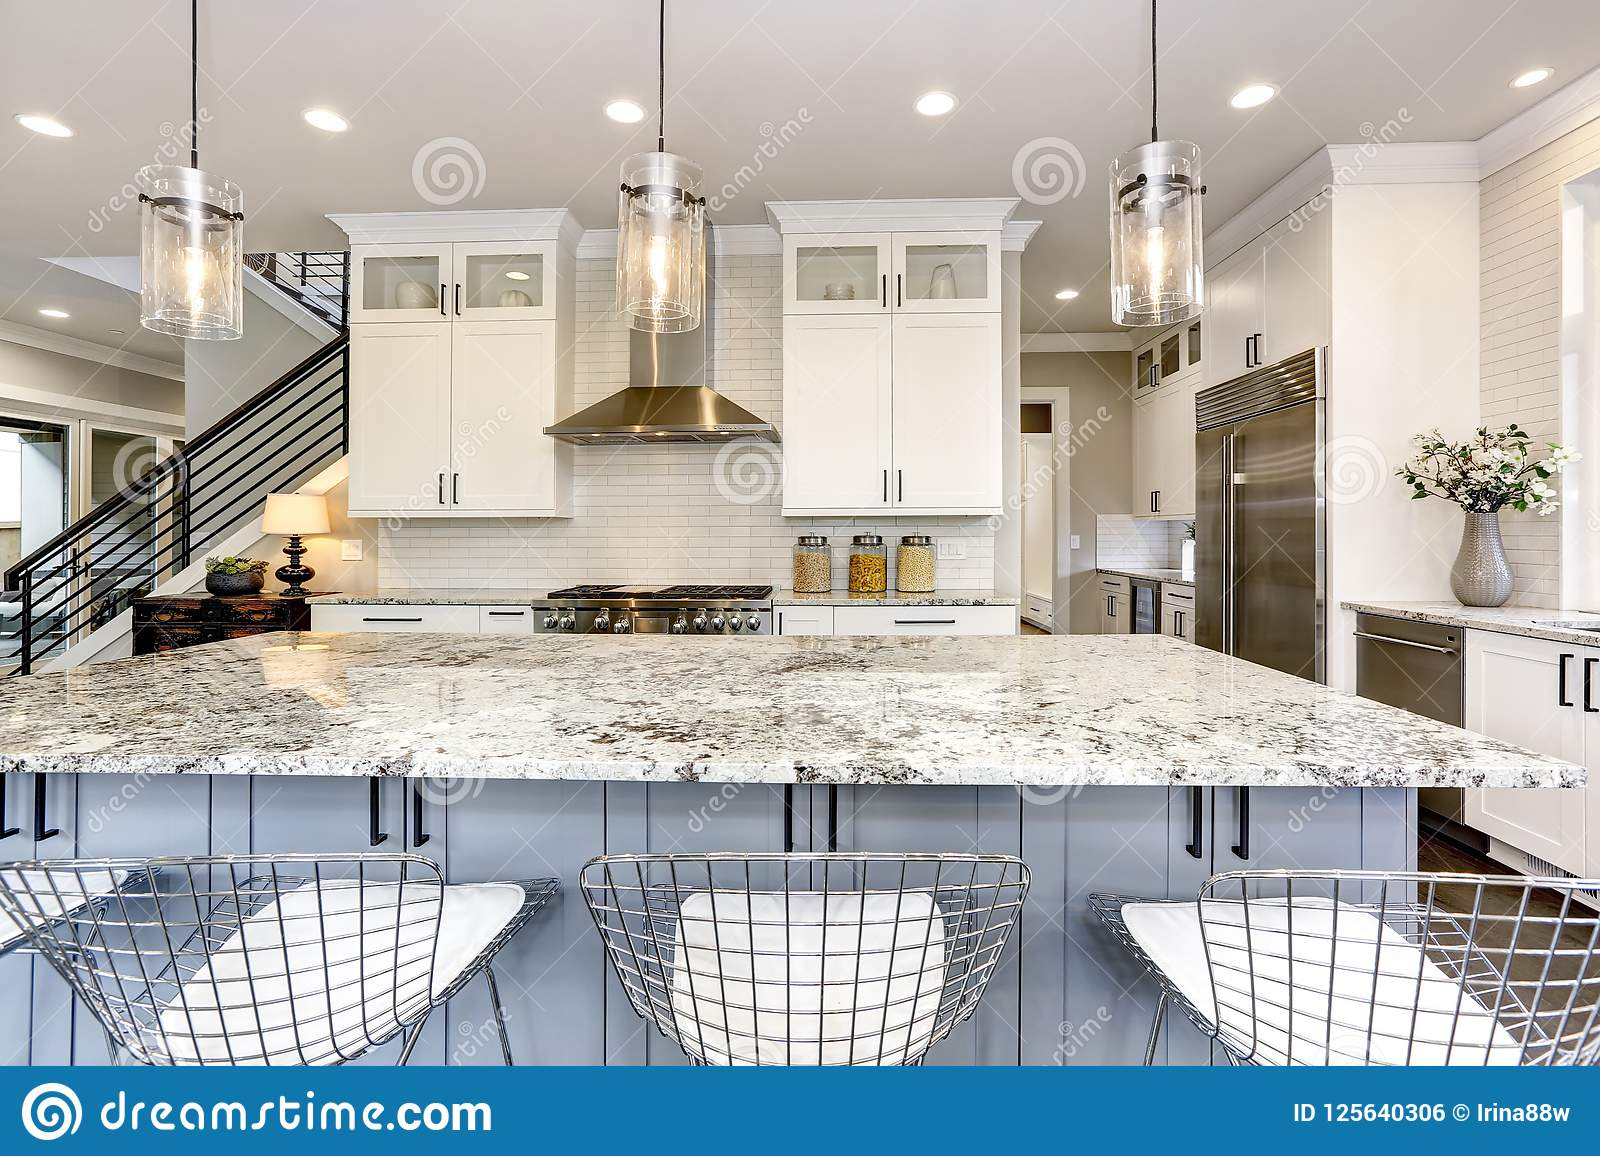 Beautiful Kitchen In Luxury Modern Home Interior With Island Stock